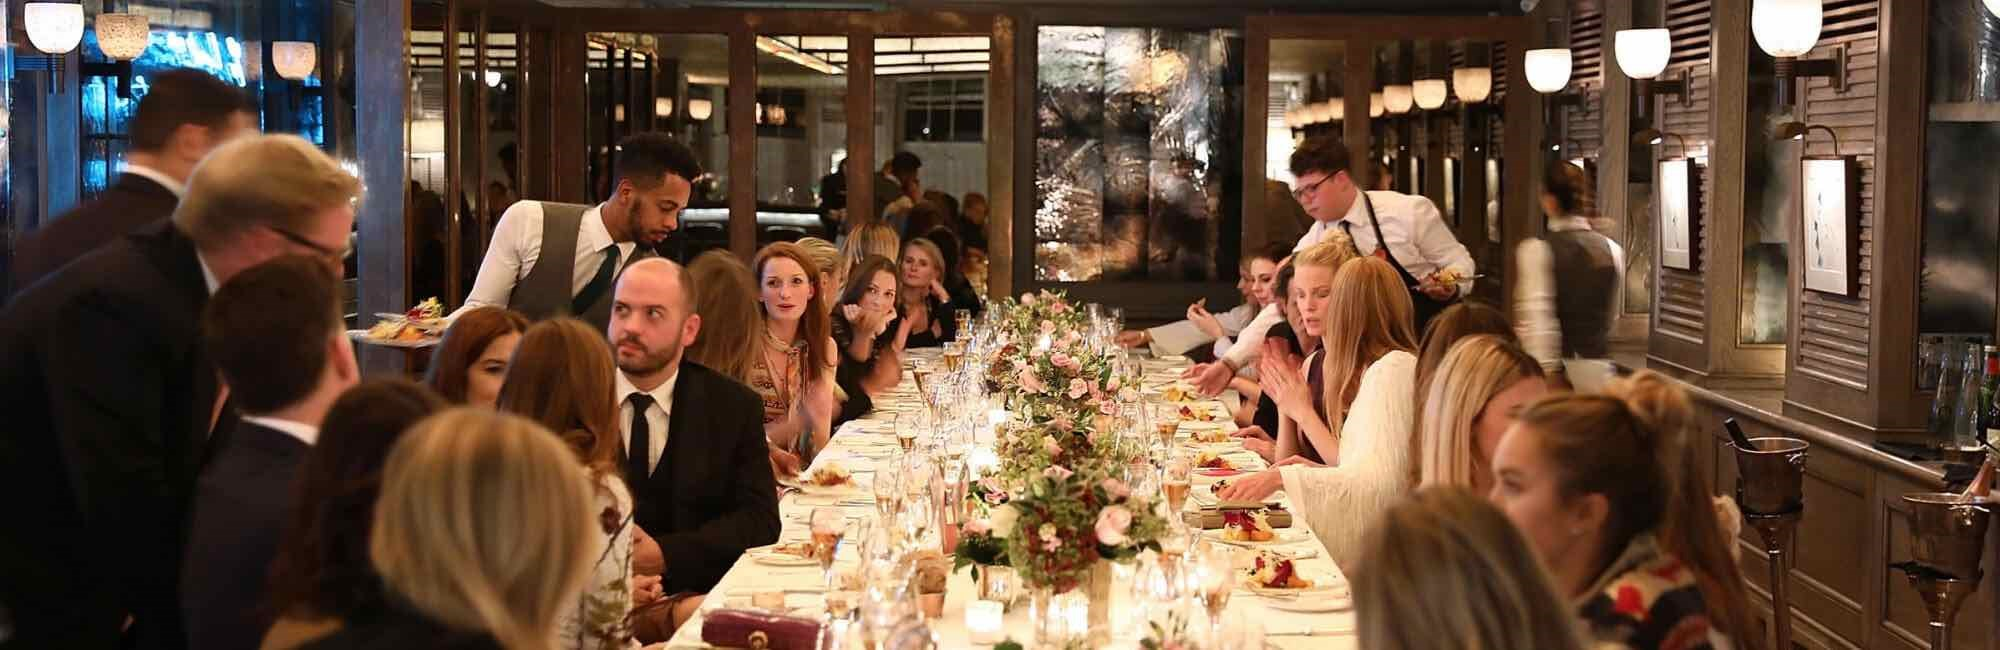 34 mayfair private dining event 2 1